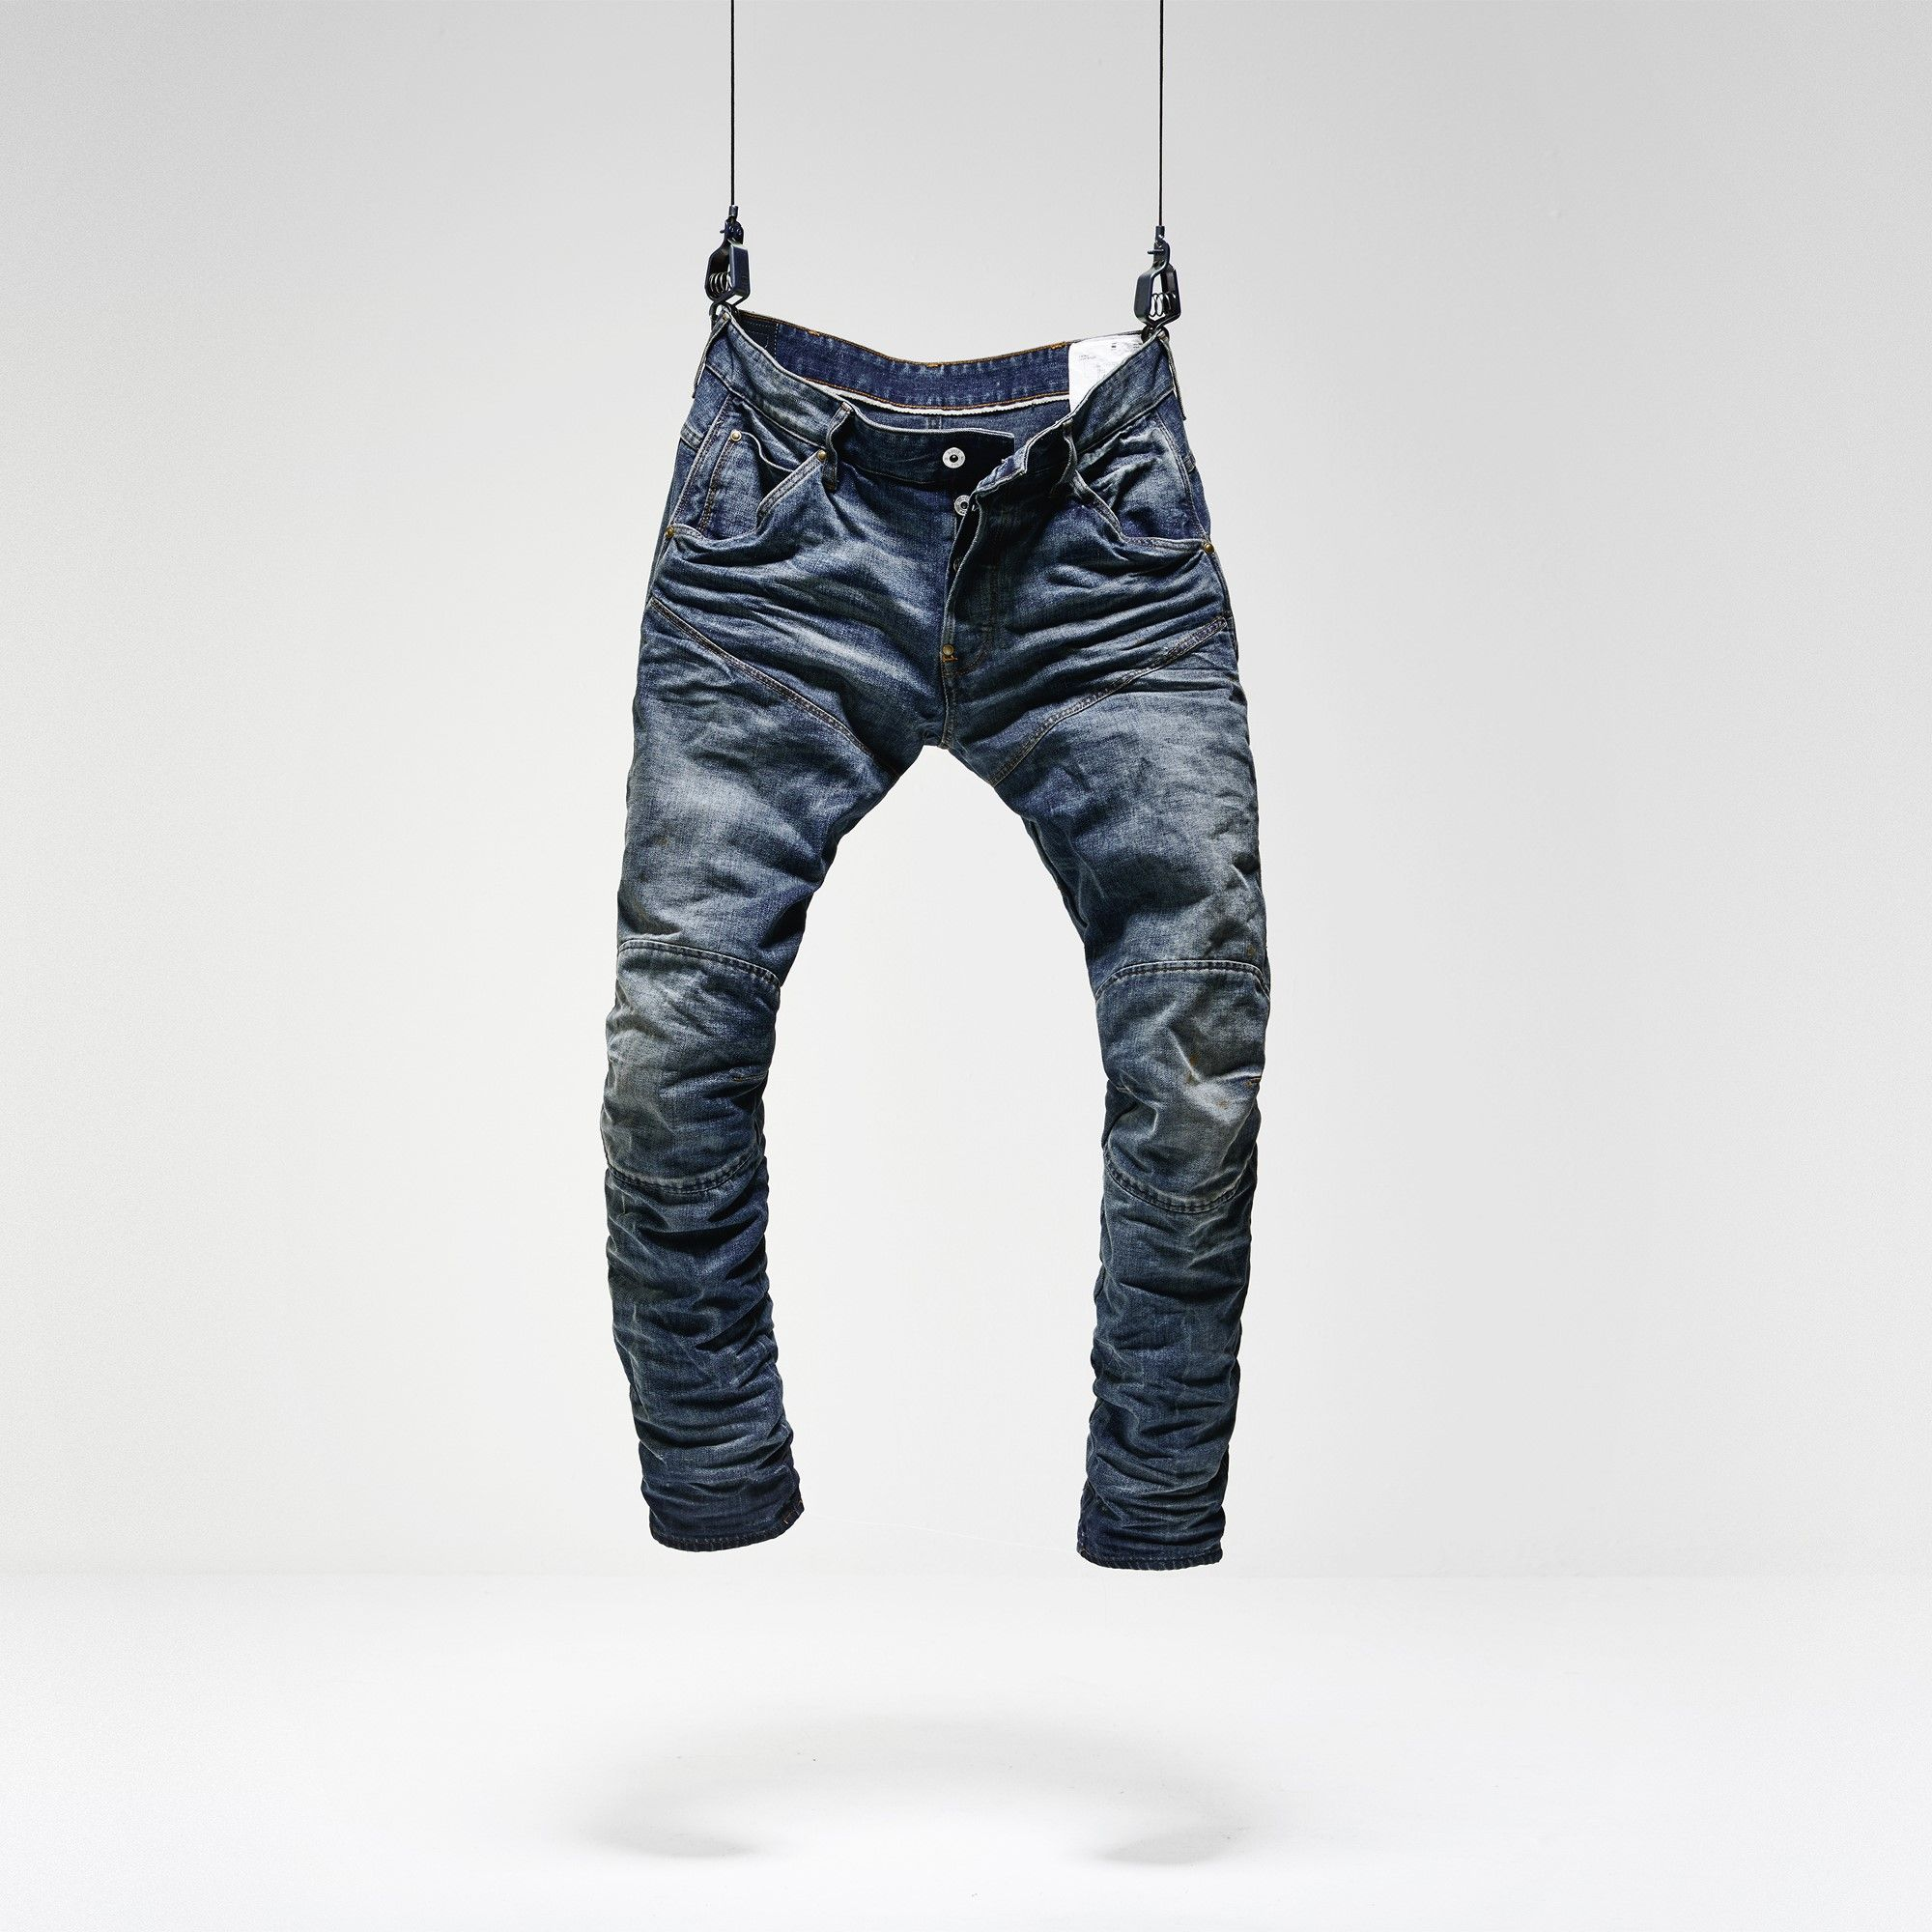 fe883ea3901 G-Star RAW | Men | 5620-gstar-elwood | Raw Essentials 5620 G-star Elwood 3d  Tapered Jeans , Dark Aged